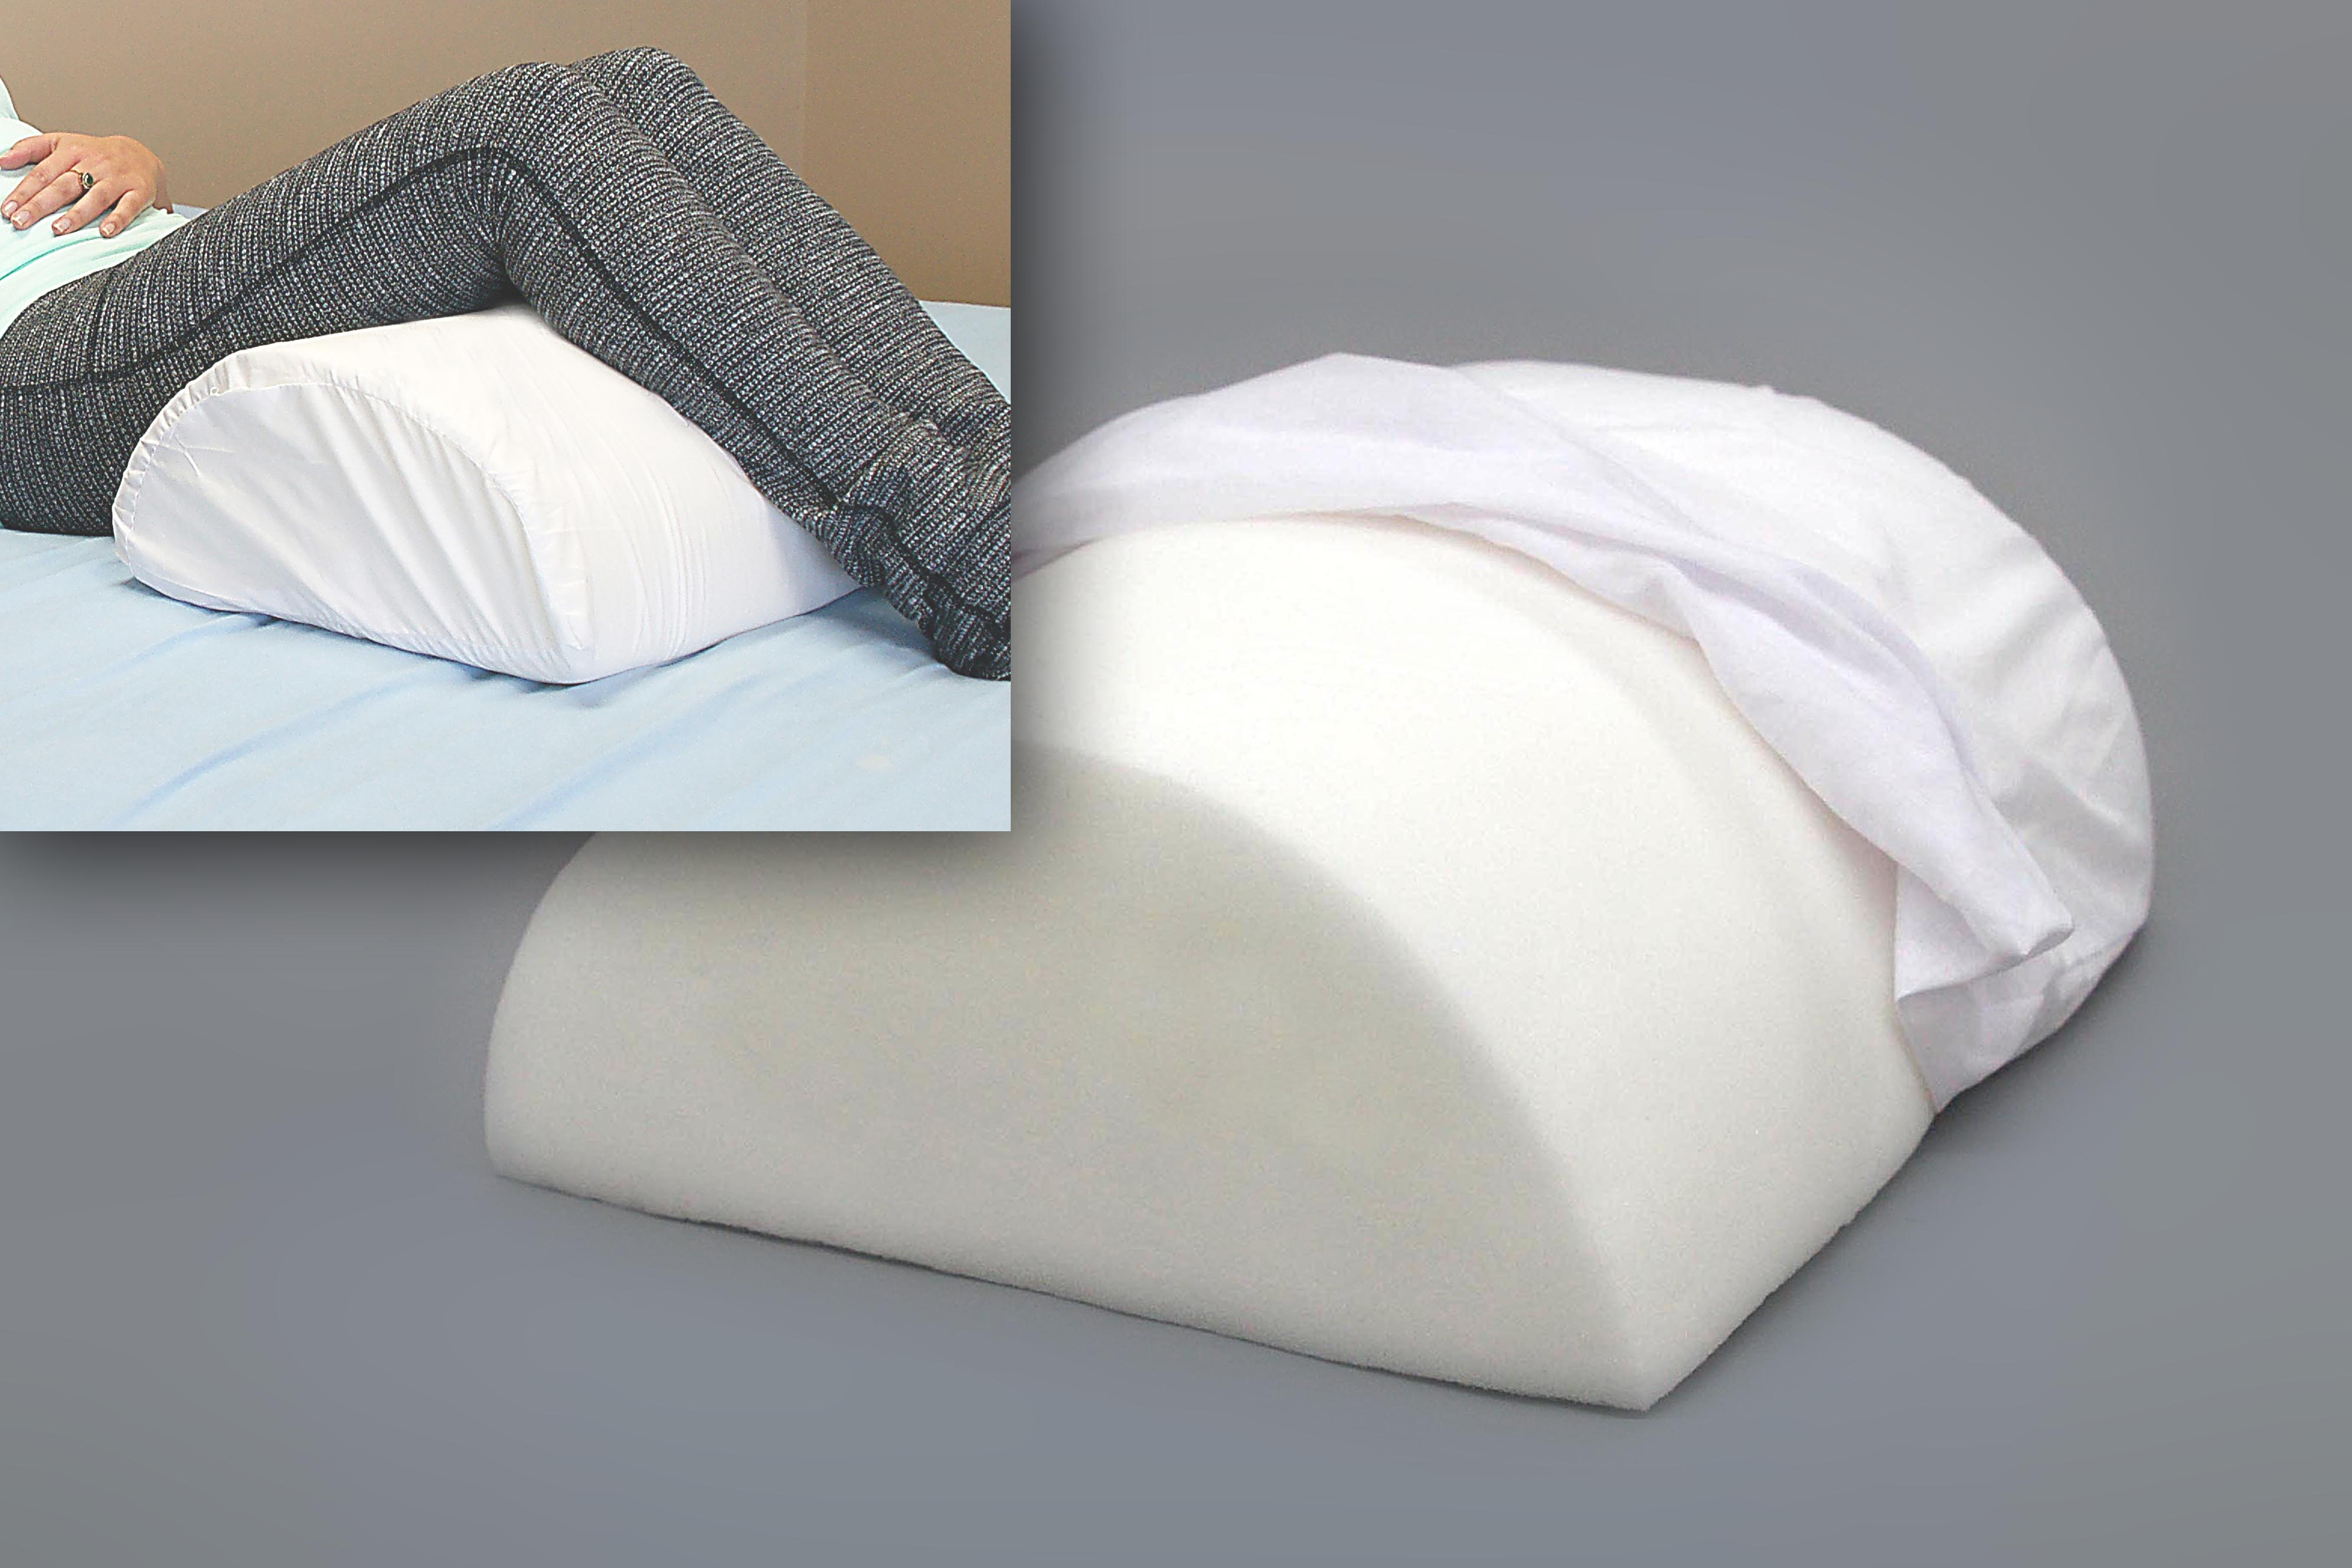 Hide A Bed Mattress Support Knee Rest - BodyForm Orthopedic | BodyForm Orthopedic